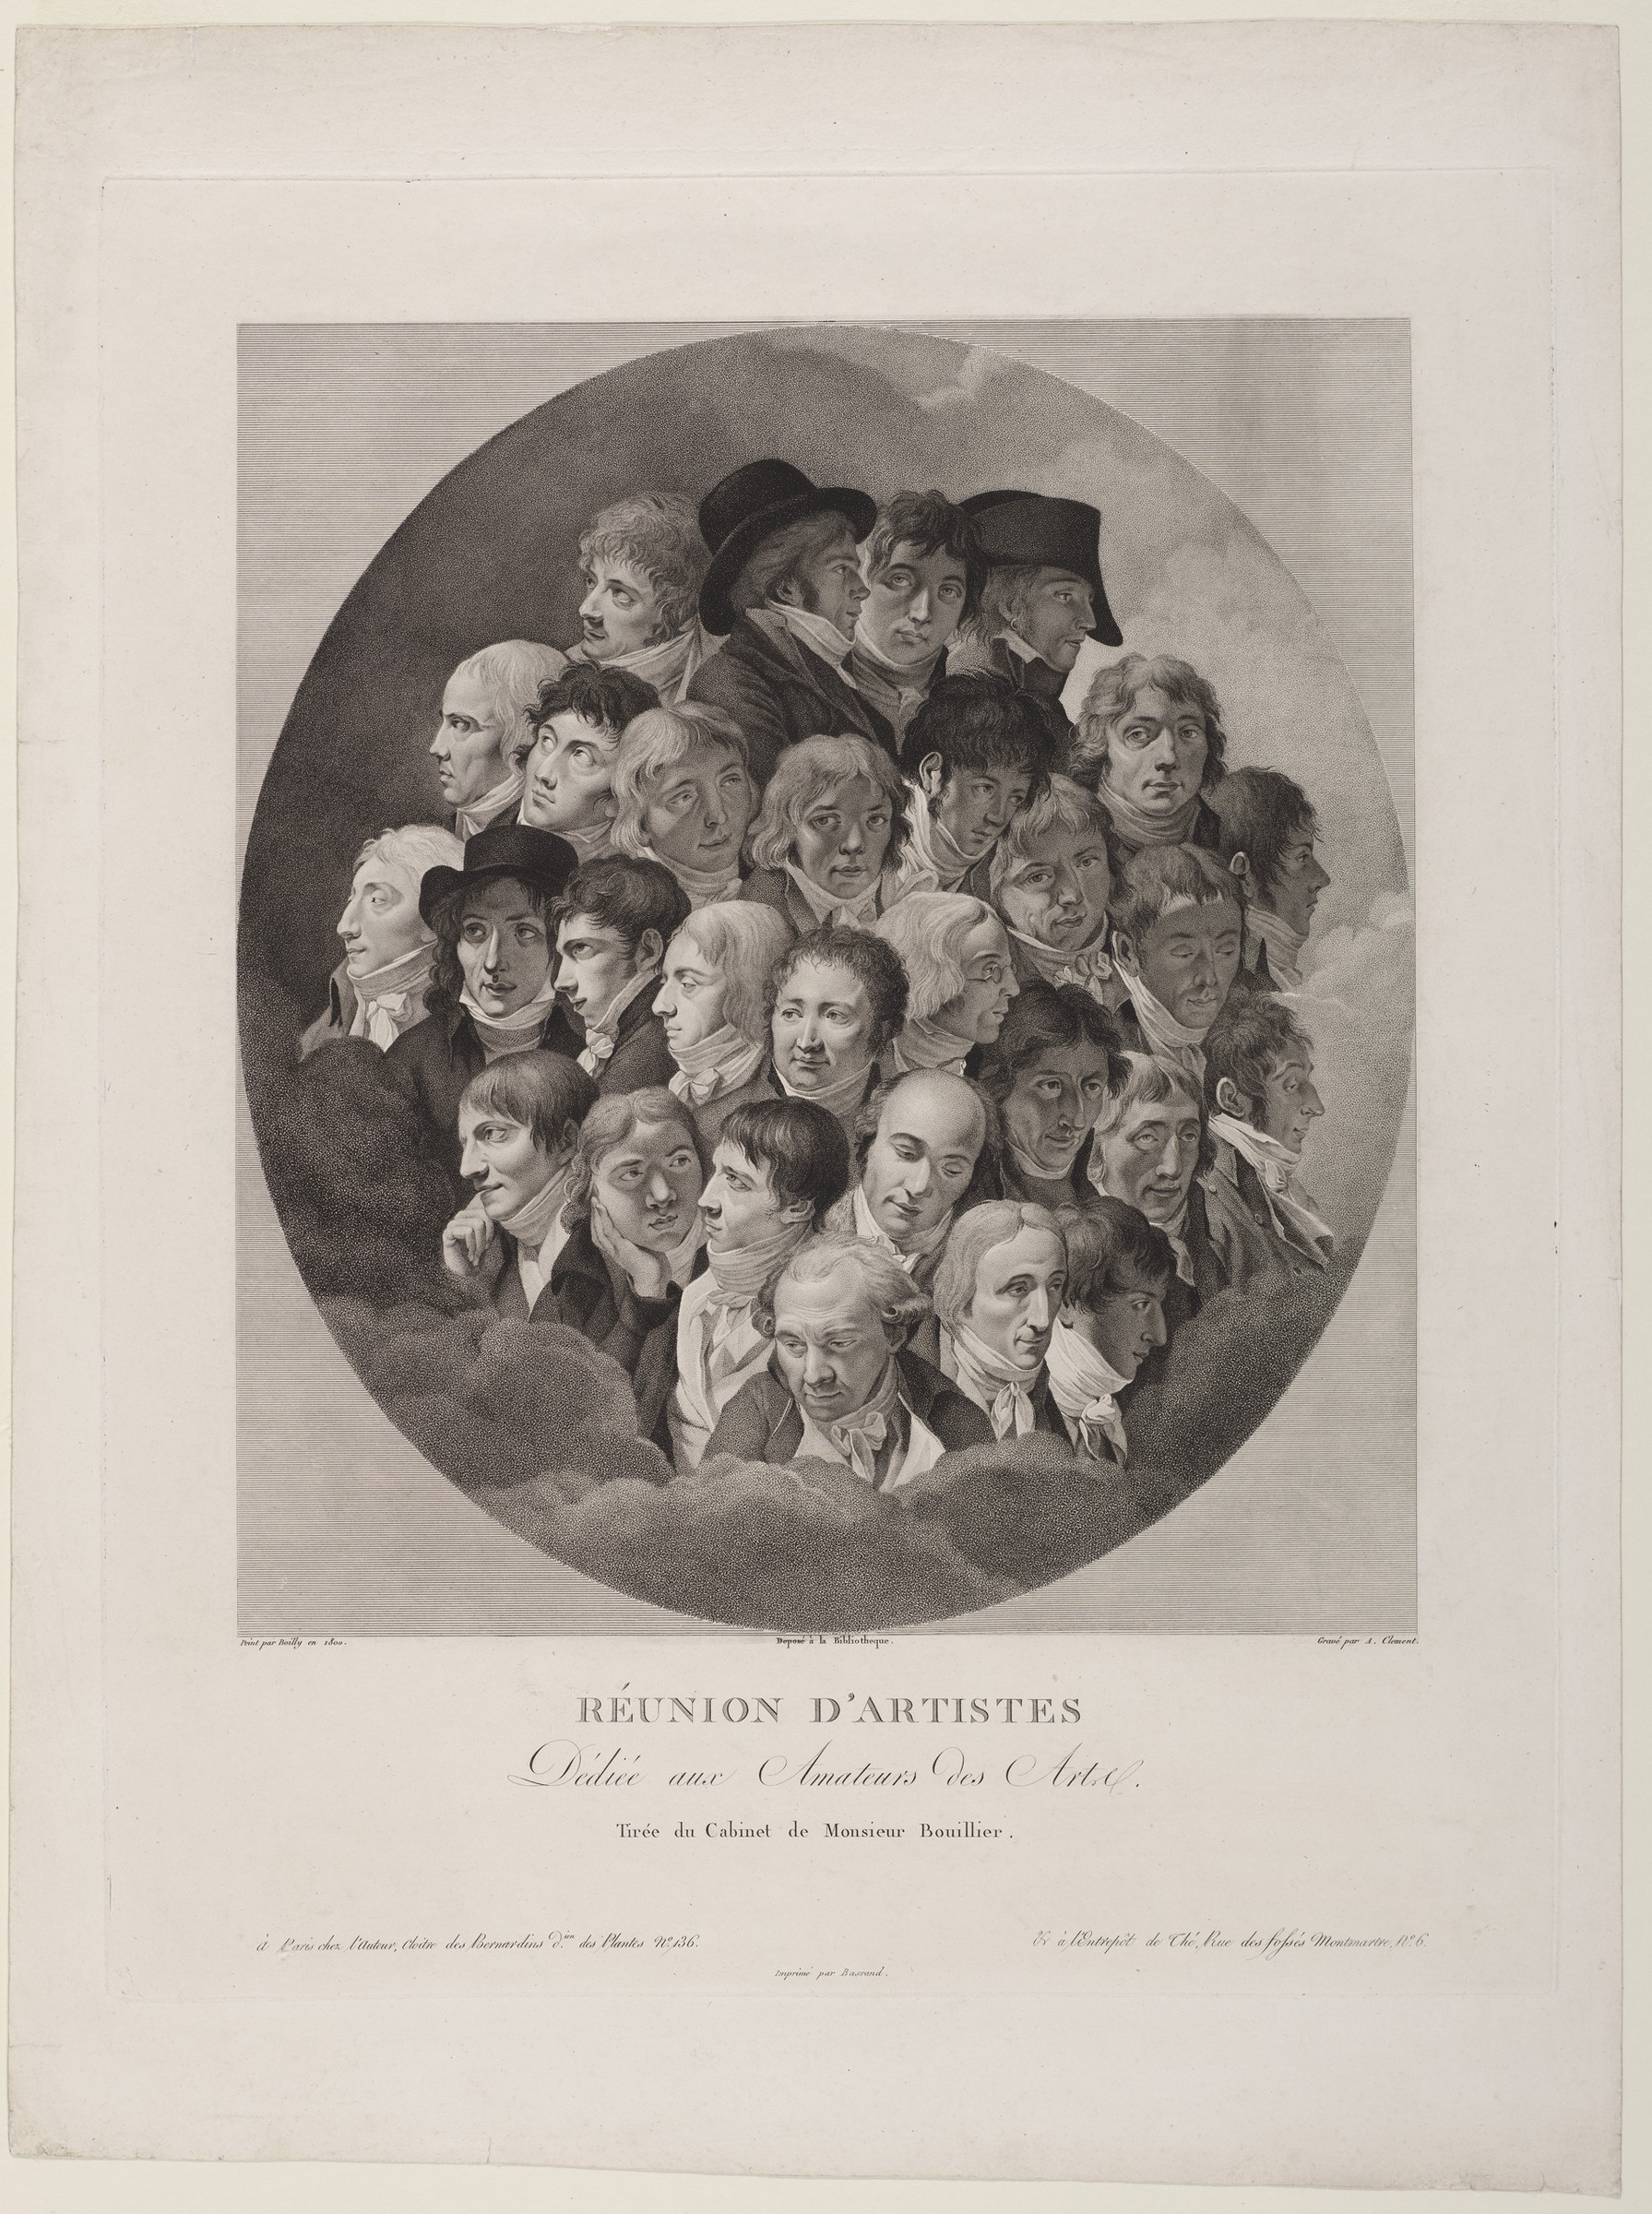 """In this black and white print, 29 male heads are arranged tightly in an oval. Some are shown in profile, facing left or right; others are depicted in three-quarter view, and yet others look out at the viewer. Some men are young, others middle-aged or older. Three wear hats, and one is nearly bald. The hair of the others is quite long, frequently curly, and rendered in different shades of light and dark. As far as is visible, they all wear jackets and white neck scarfs. The group of heads is surrounded by clouds. The caption reads """"Réunion d'artistes."""""""